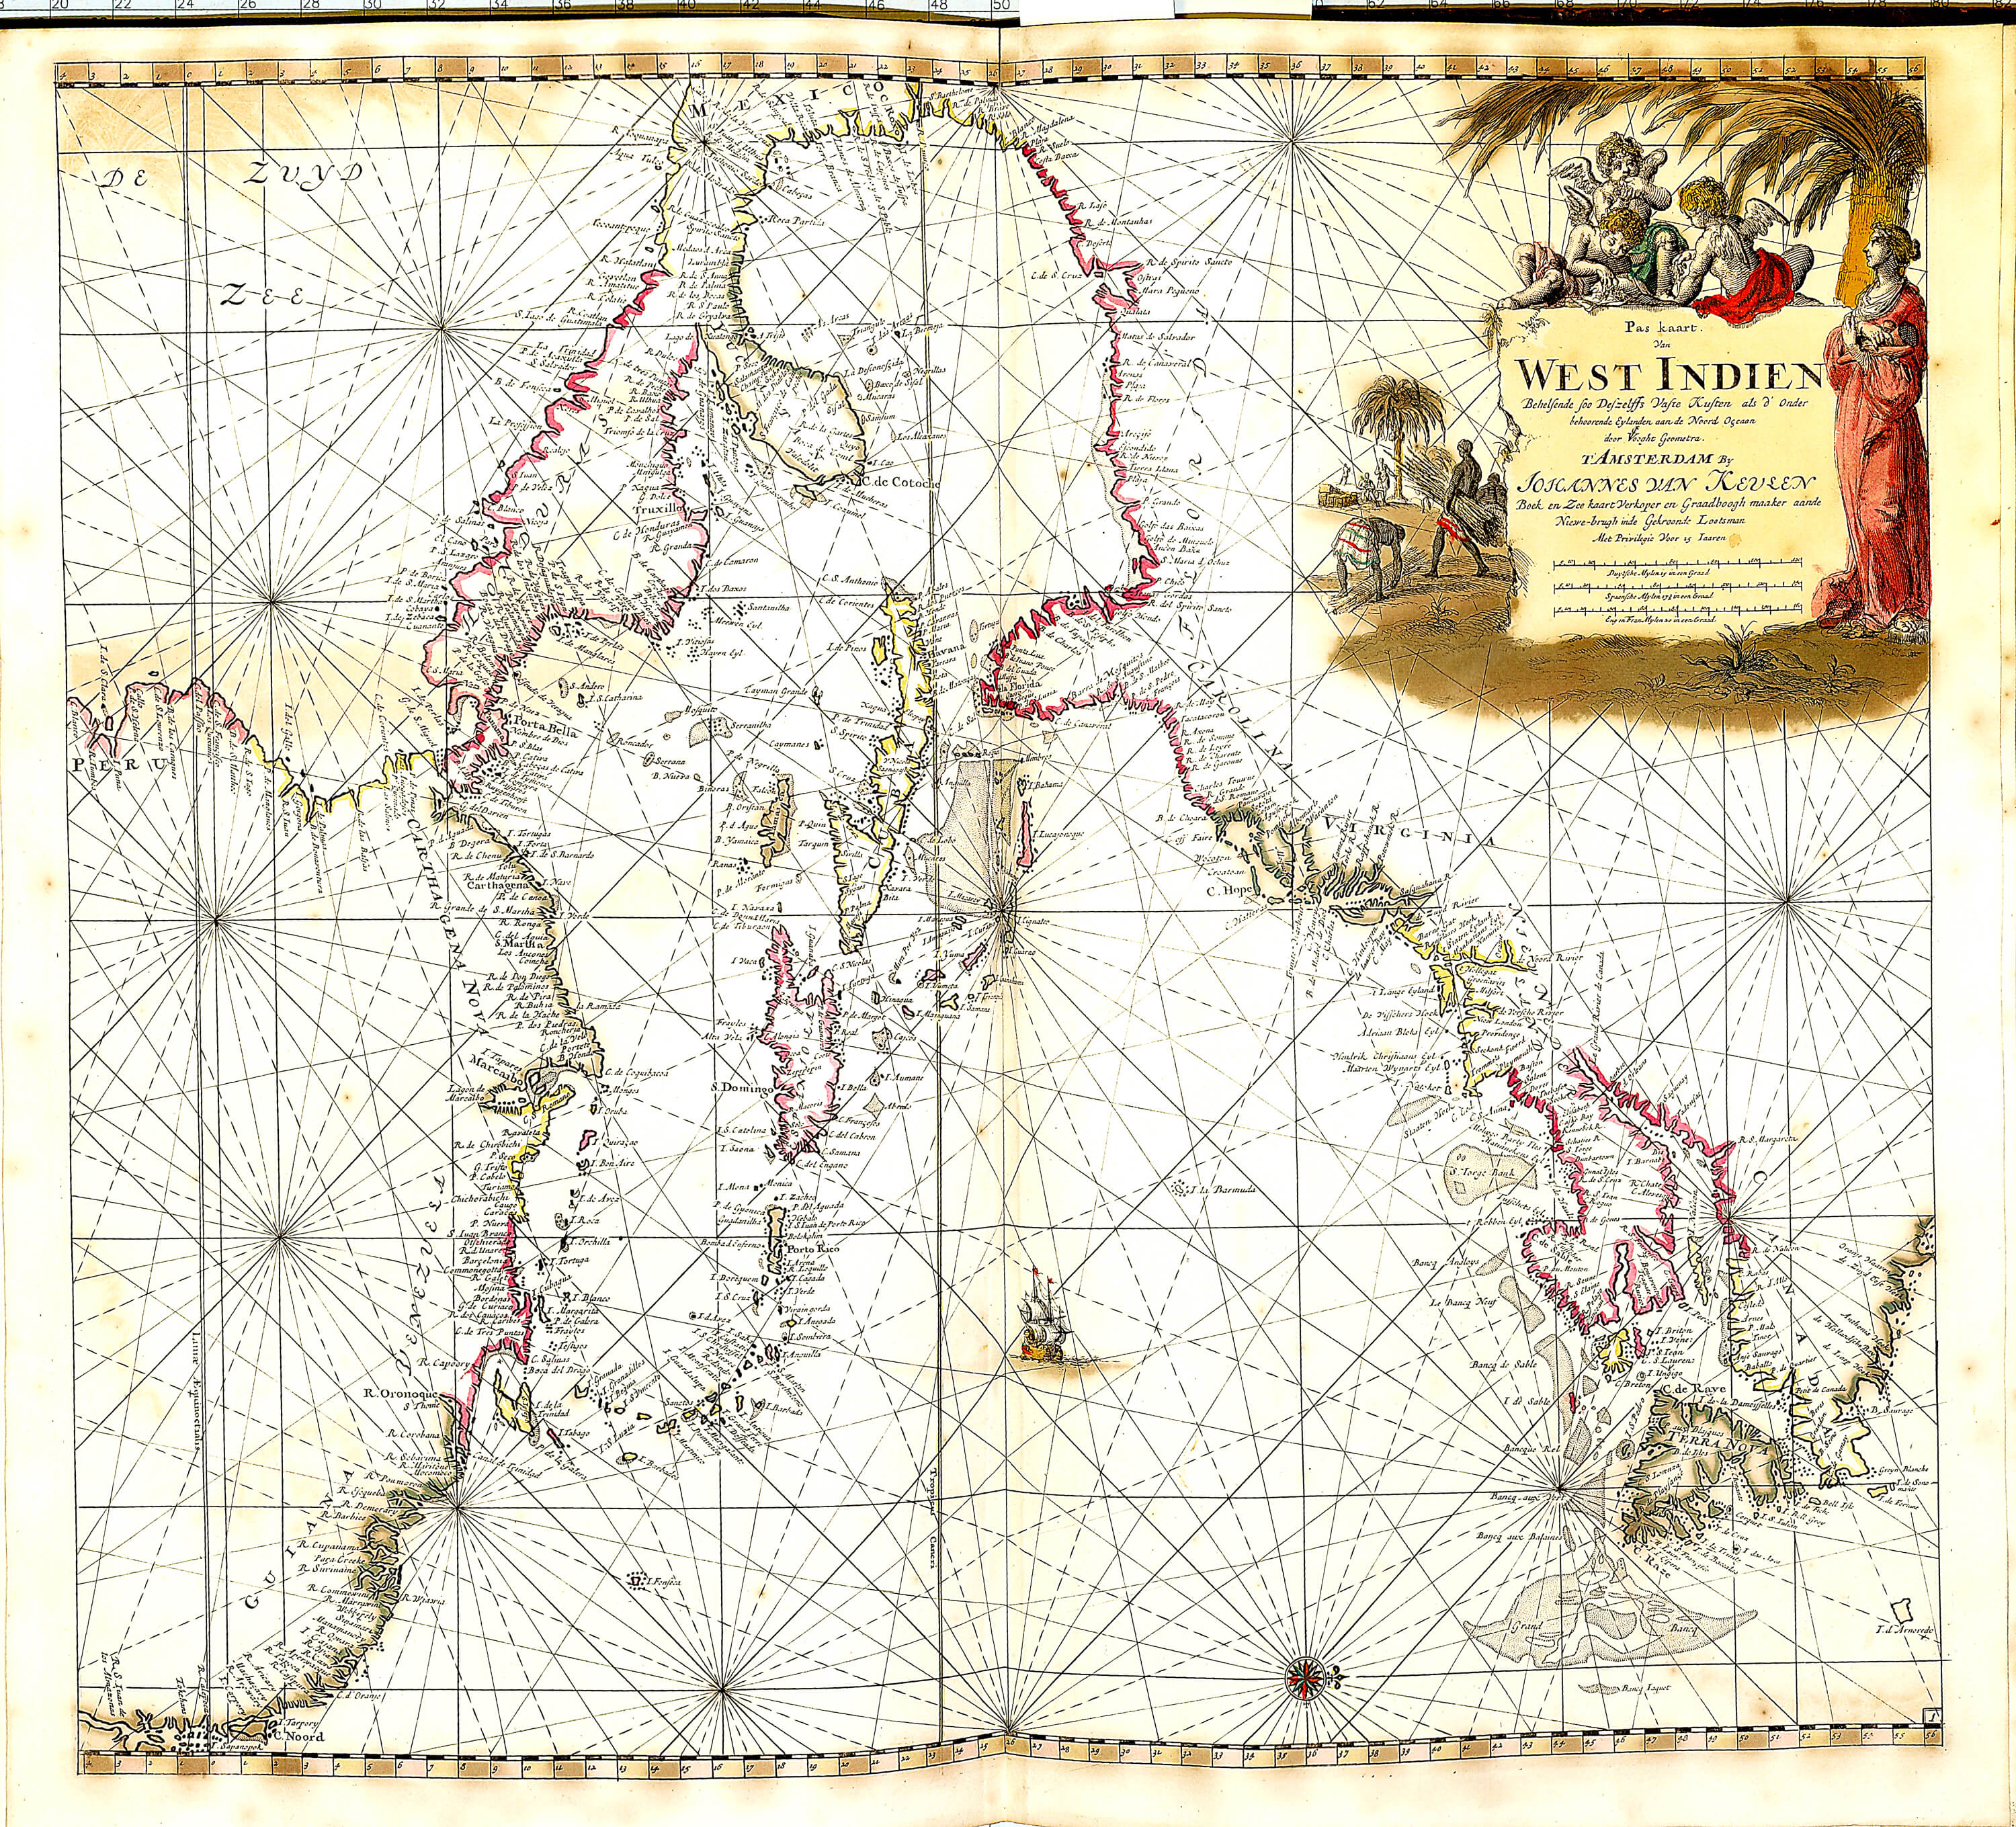 World atlas of charts by johannes van keulan z 1 17 1696 part 3 z 1 17 107 west indies gumiabroncs Image collections